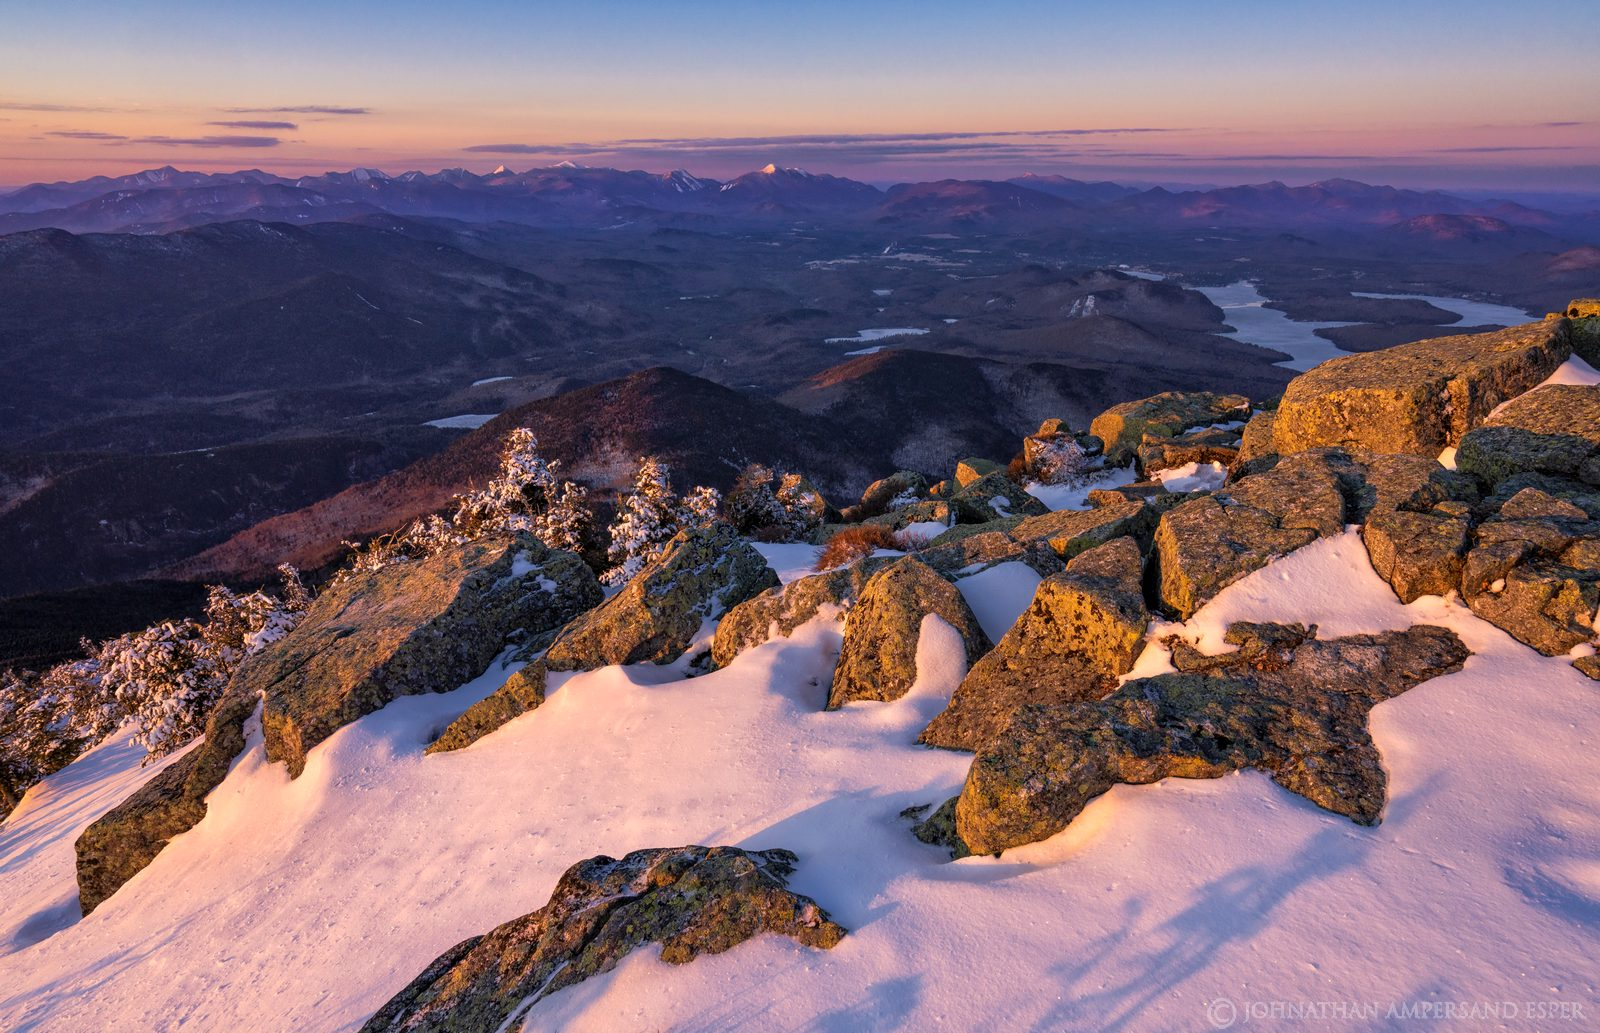 Whiteface Mt,summit,rocks,alpenglow,pink snow and rocks,High Peaks,March,2020,late winter,Whiteface,Whiteface Mountain,, photo